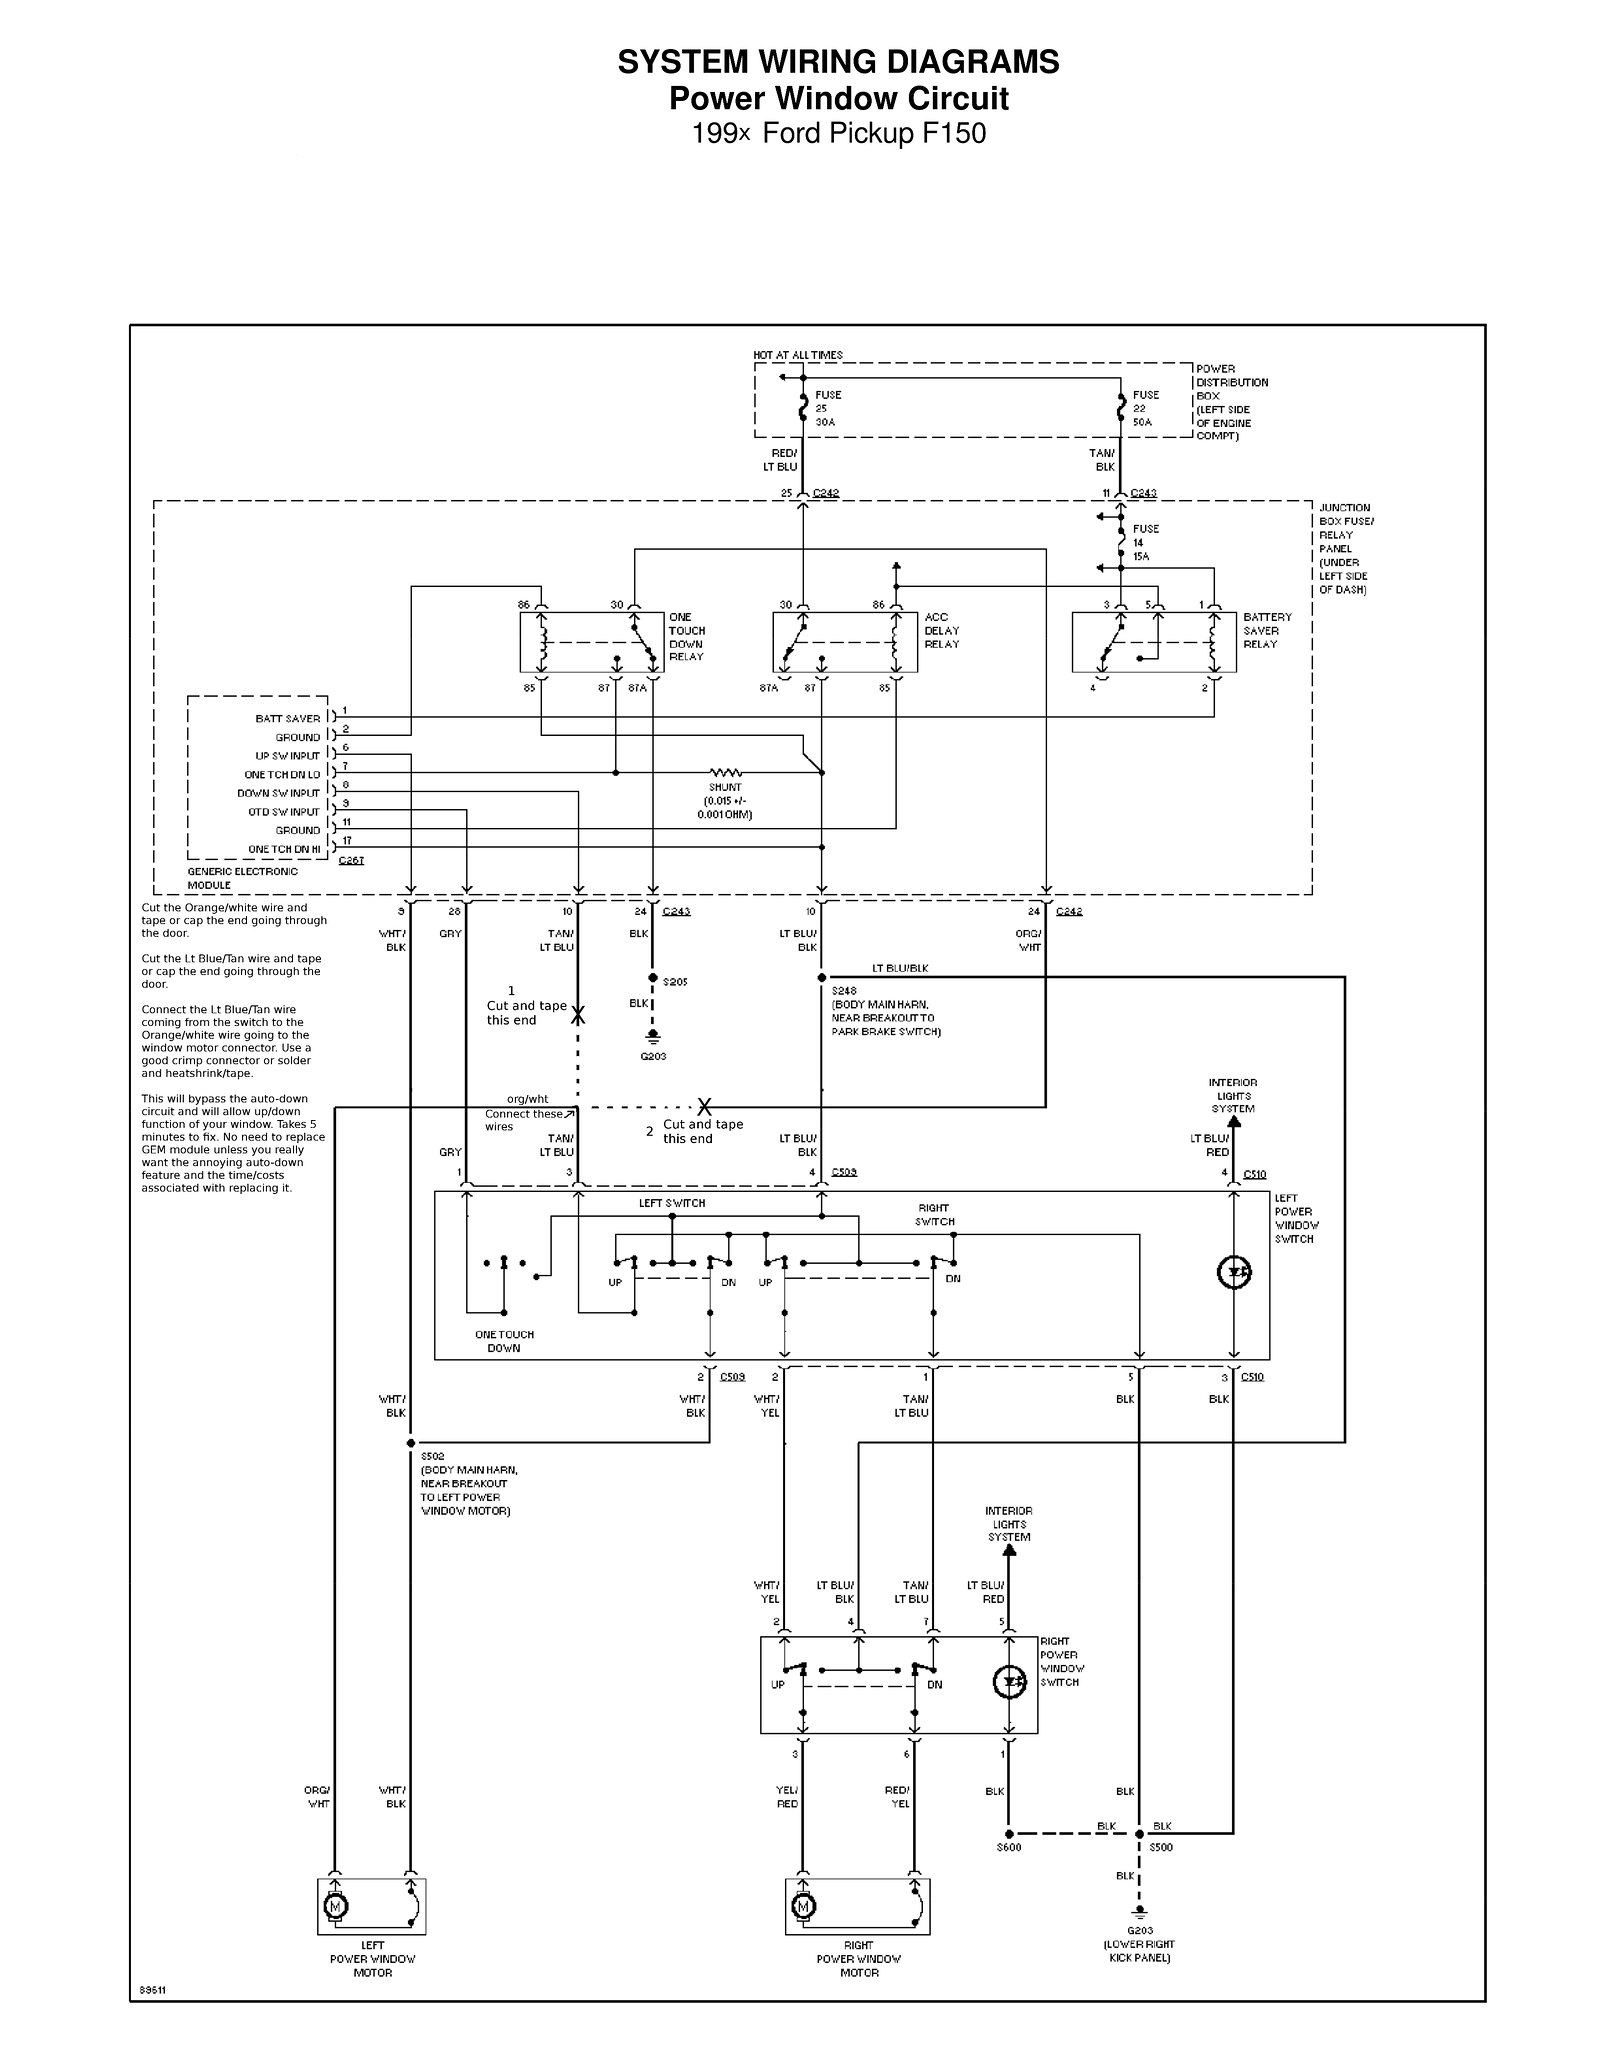 1997 F150 Blower Motor Wiring Diagram 1997 Ford E 450 Fuse Box Vw T5 Yenpancane Jeanjaures37 Fr